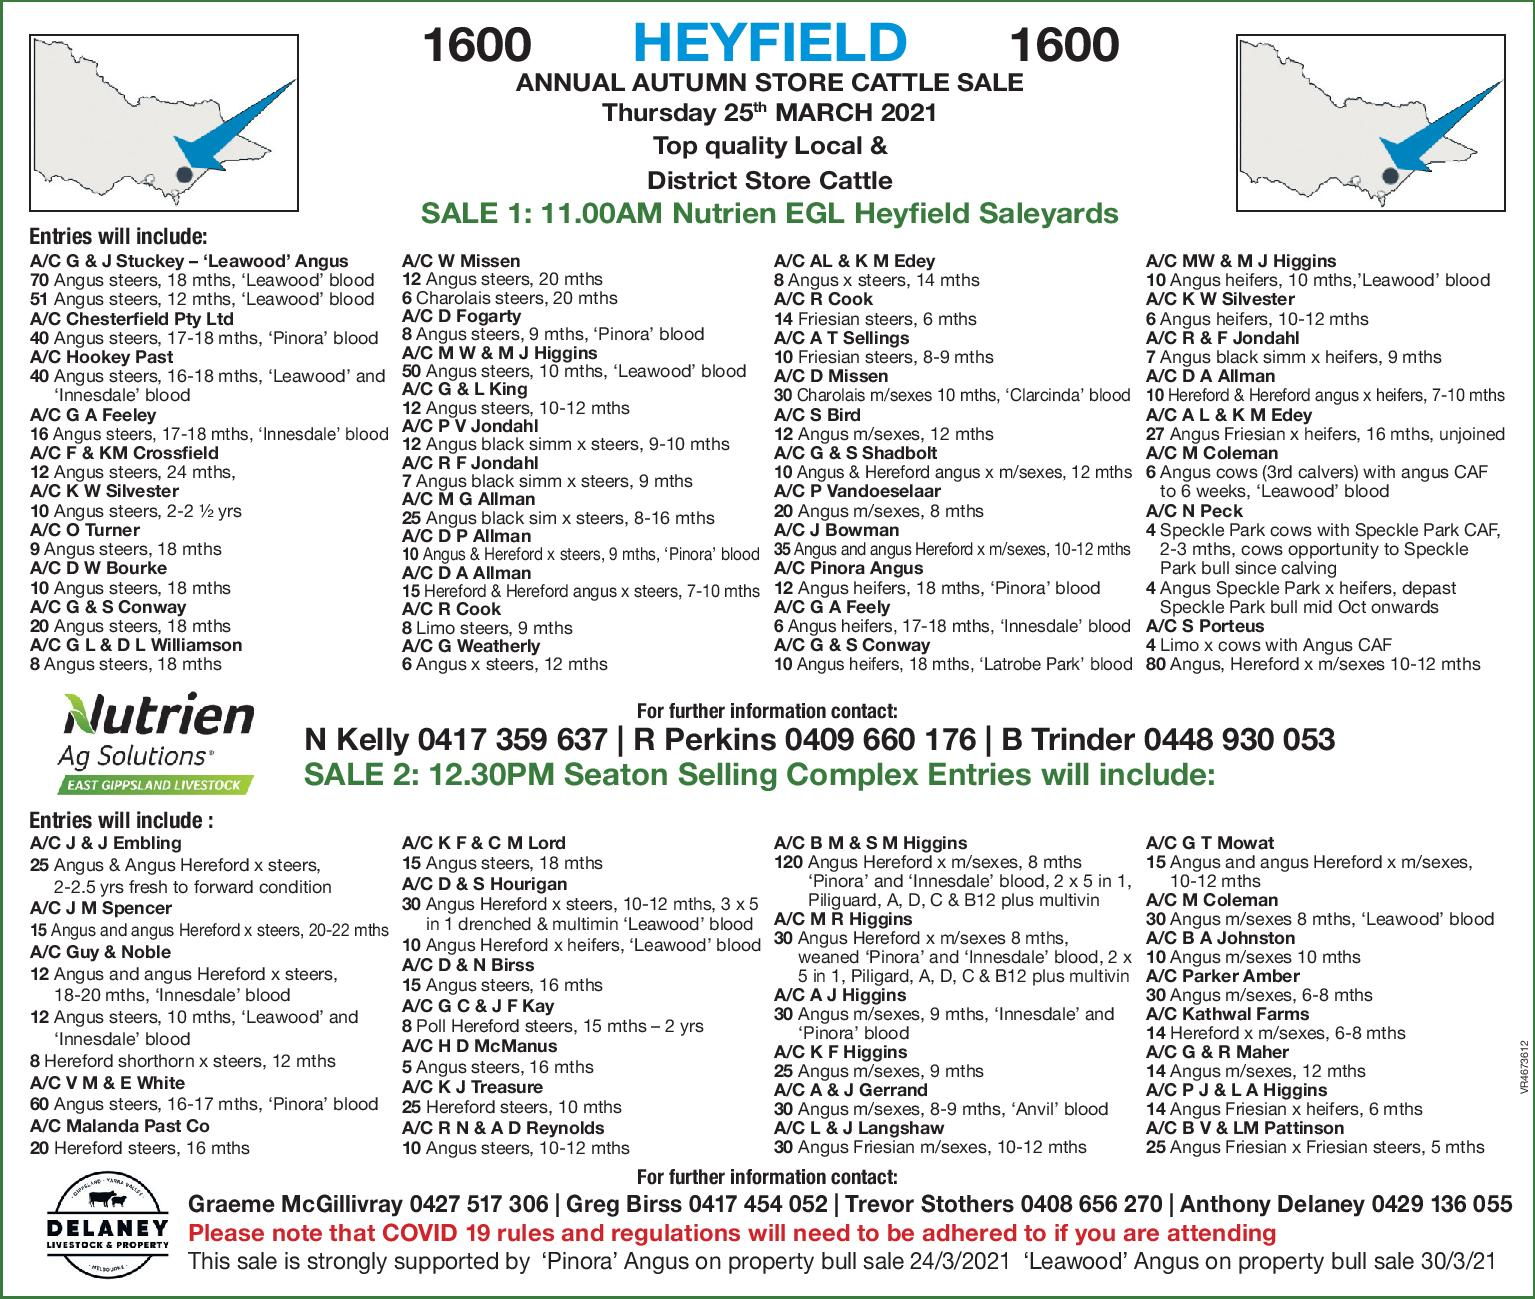 HEYFIELD ANNUAL AUTUMN STORE CATTLE SALE